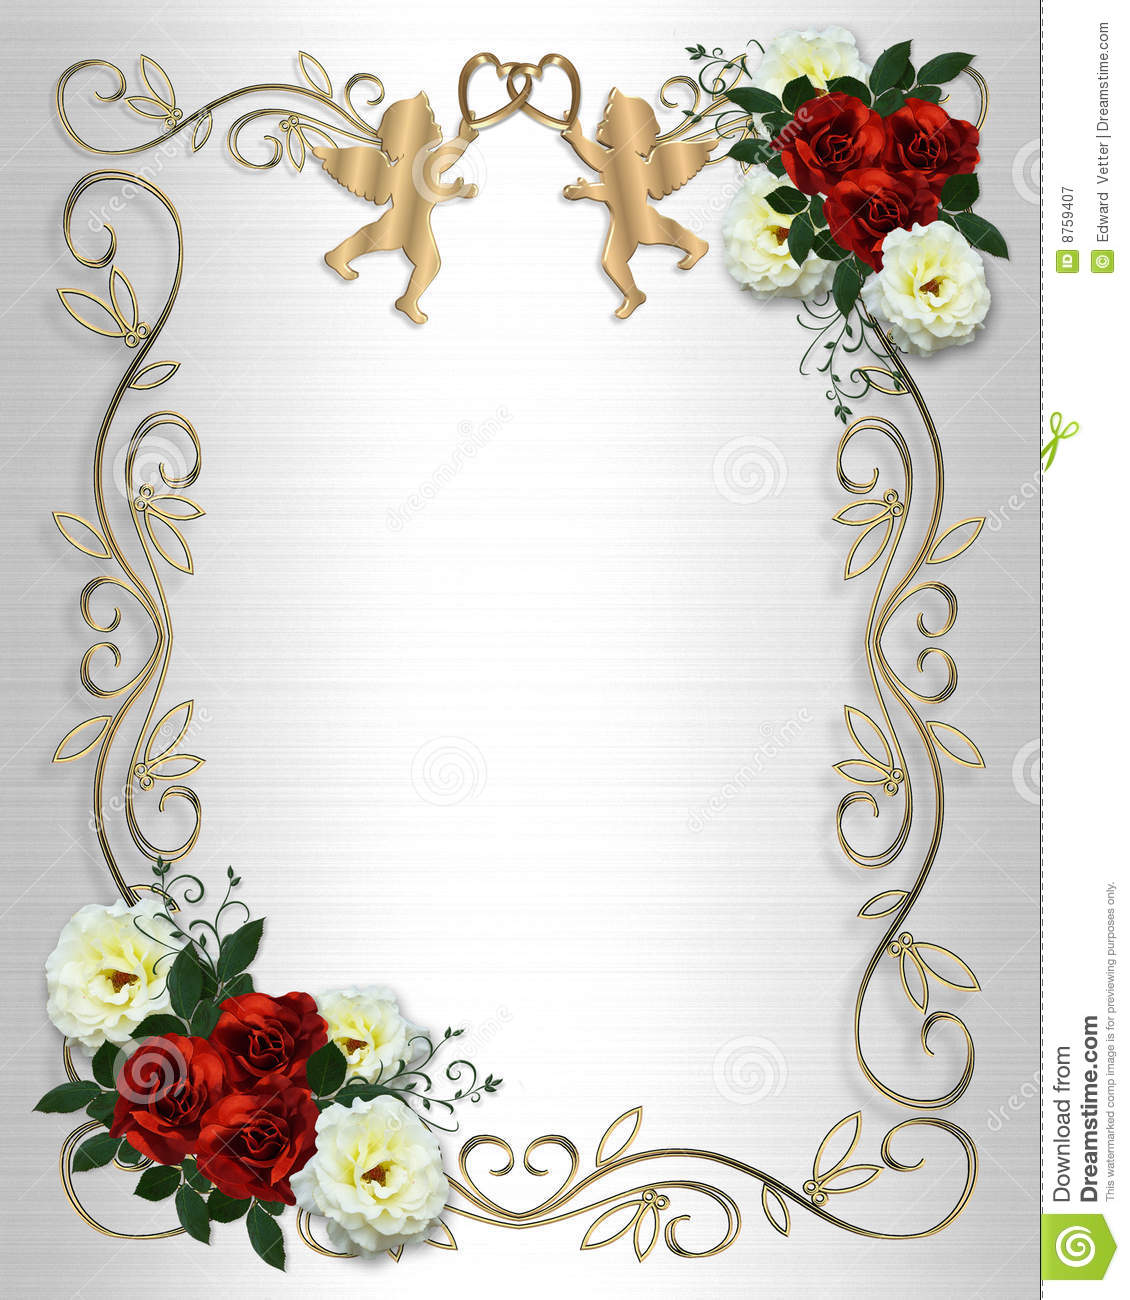 Royalty Free Stock Photography: Wedding invitation Red Roses Border on ...